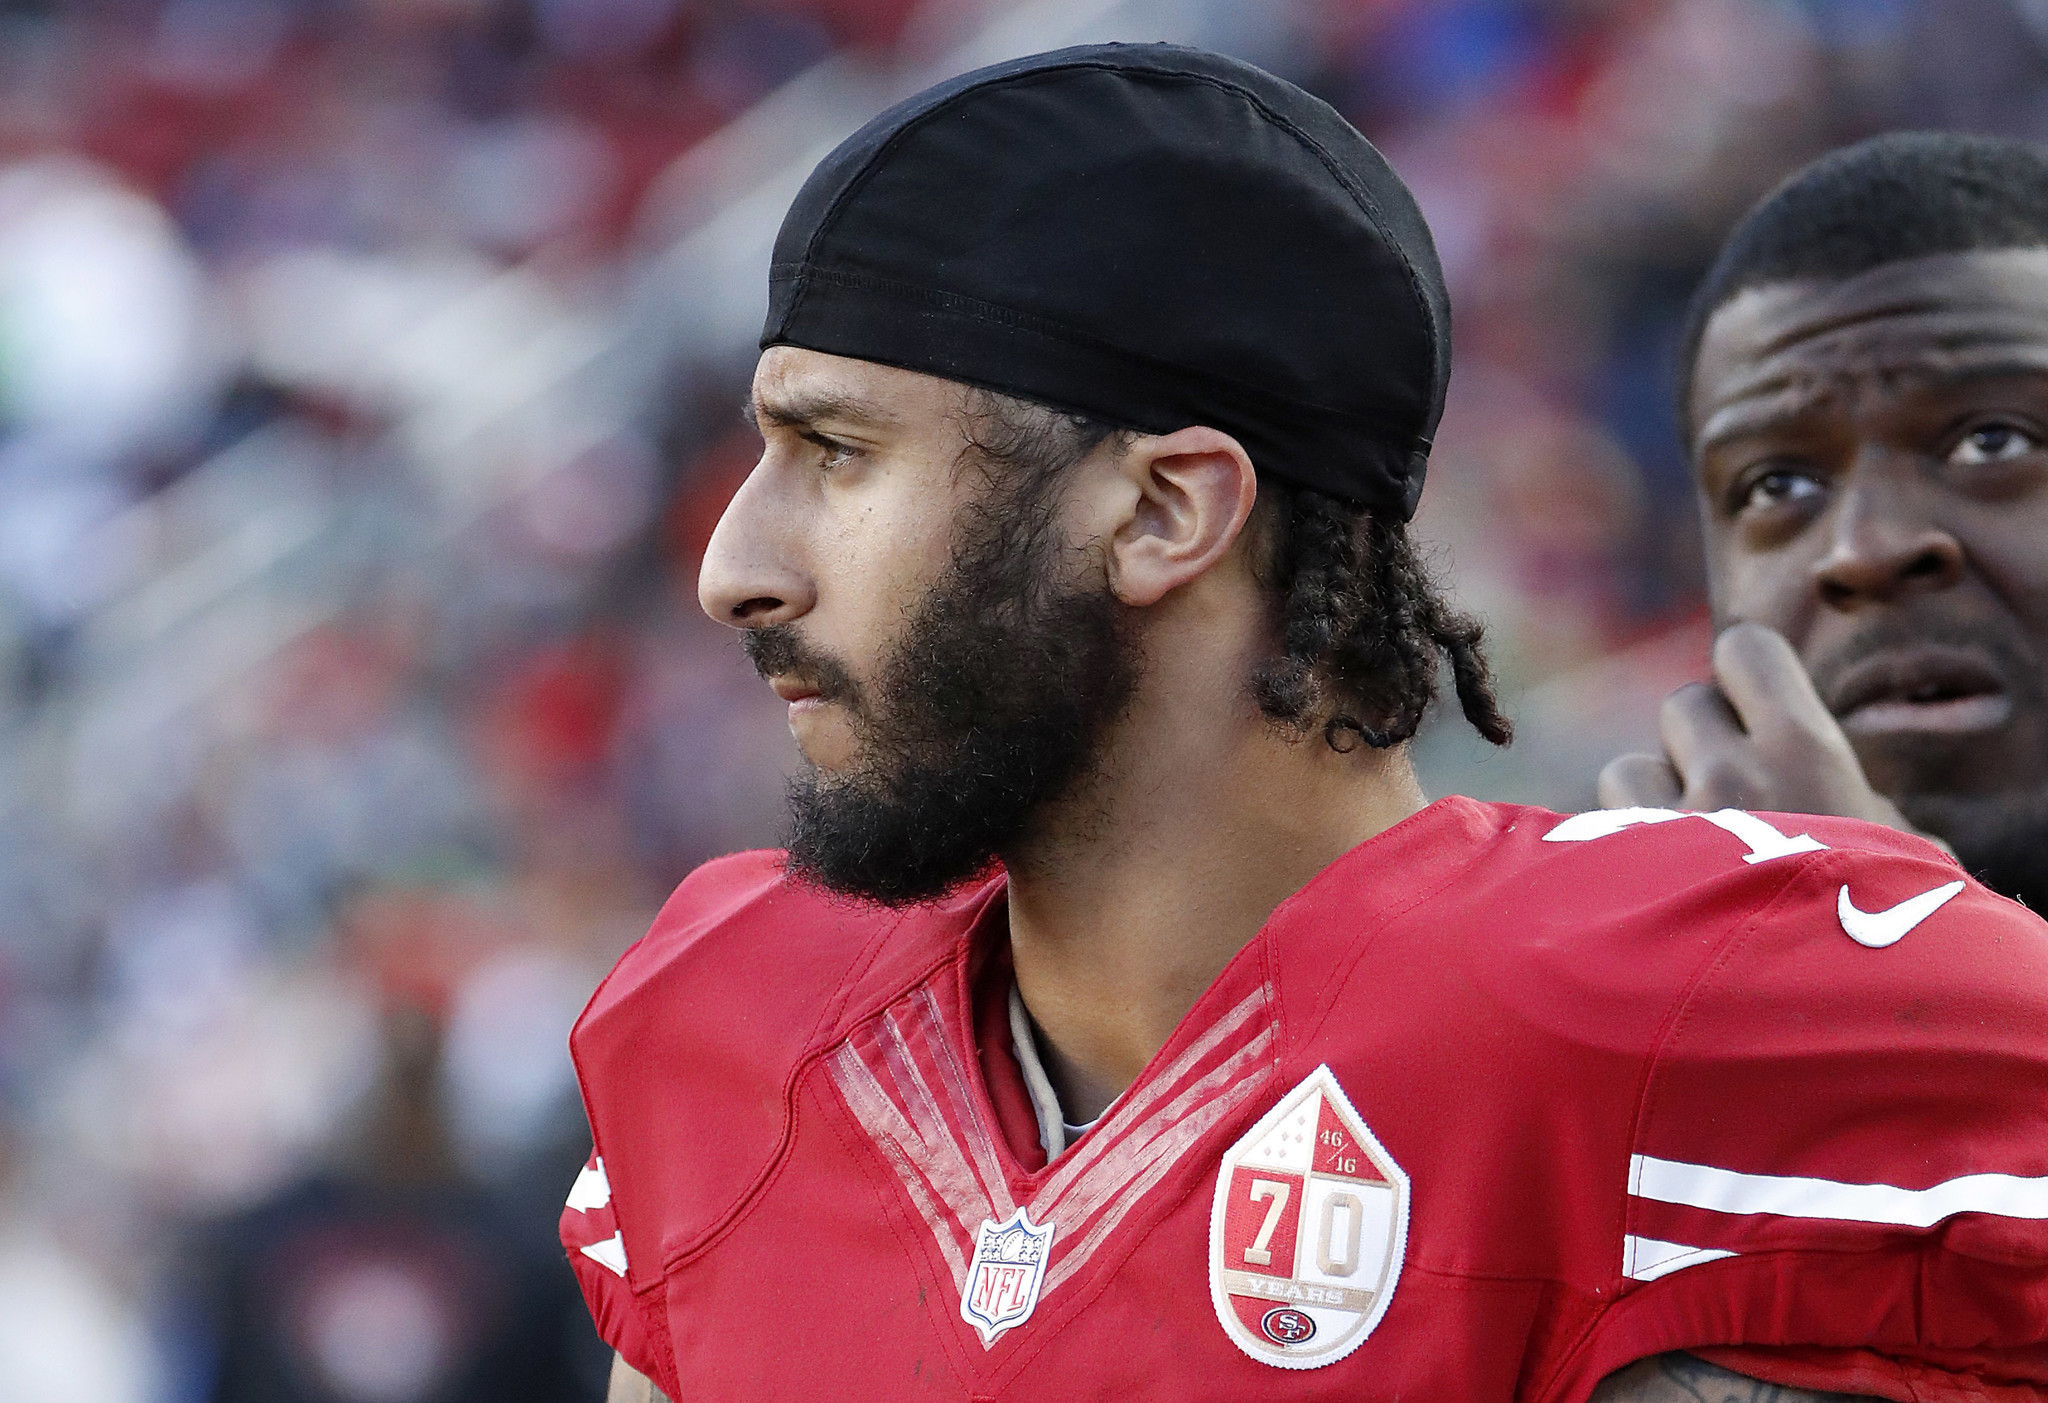 Nfl expects colin kaepernick to be invited to next weeks meeting nfl expects colin kaepernick to be invited to next weeks meeting with players chicago tribune m4hsunfo